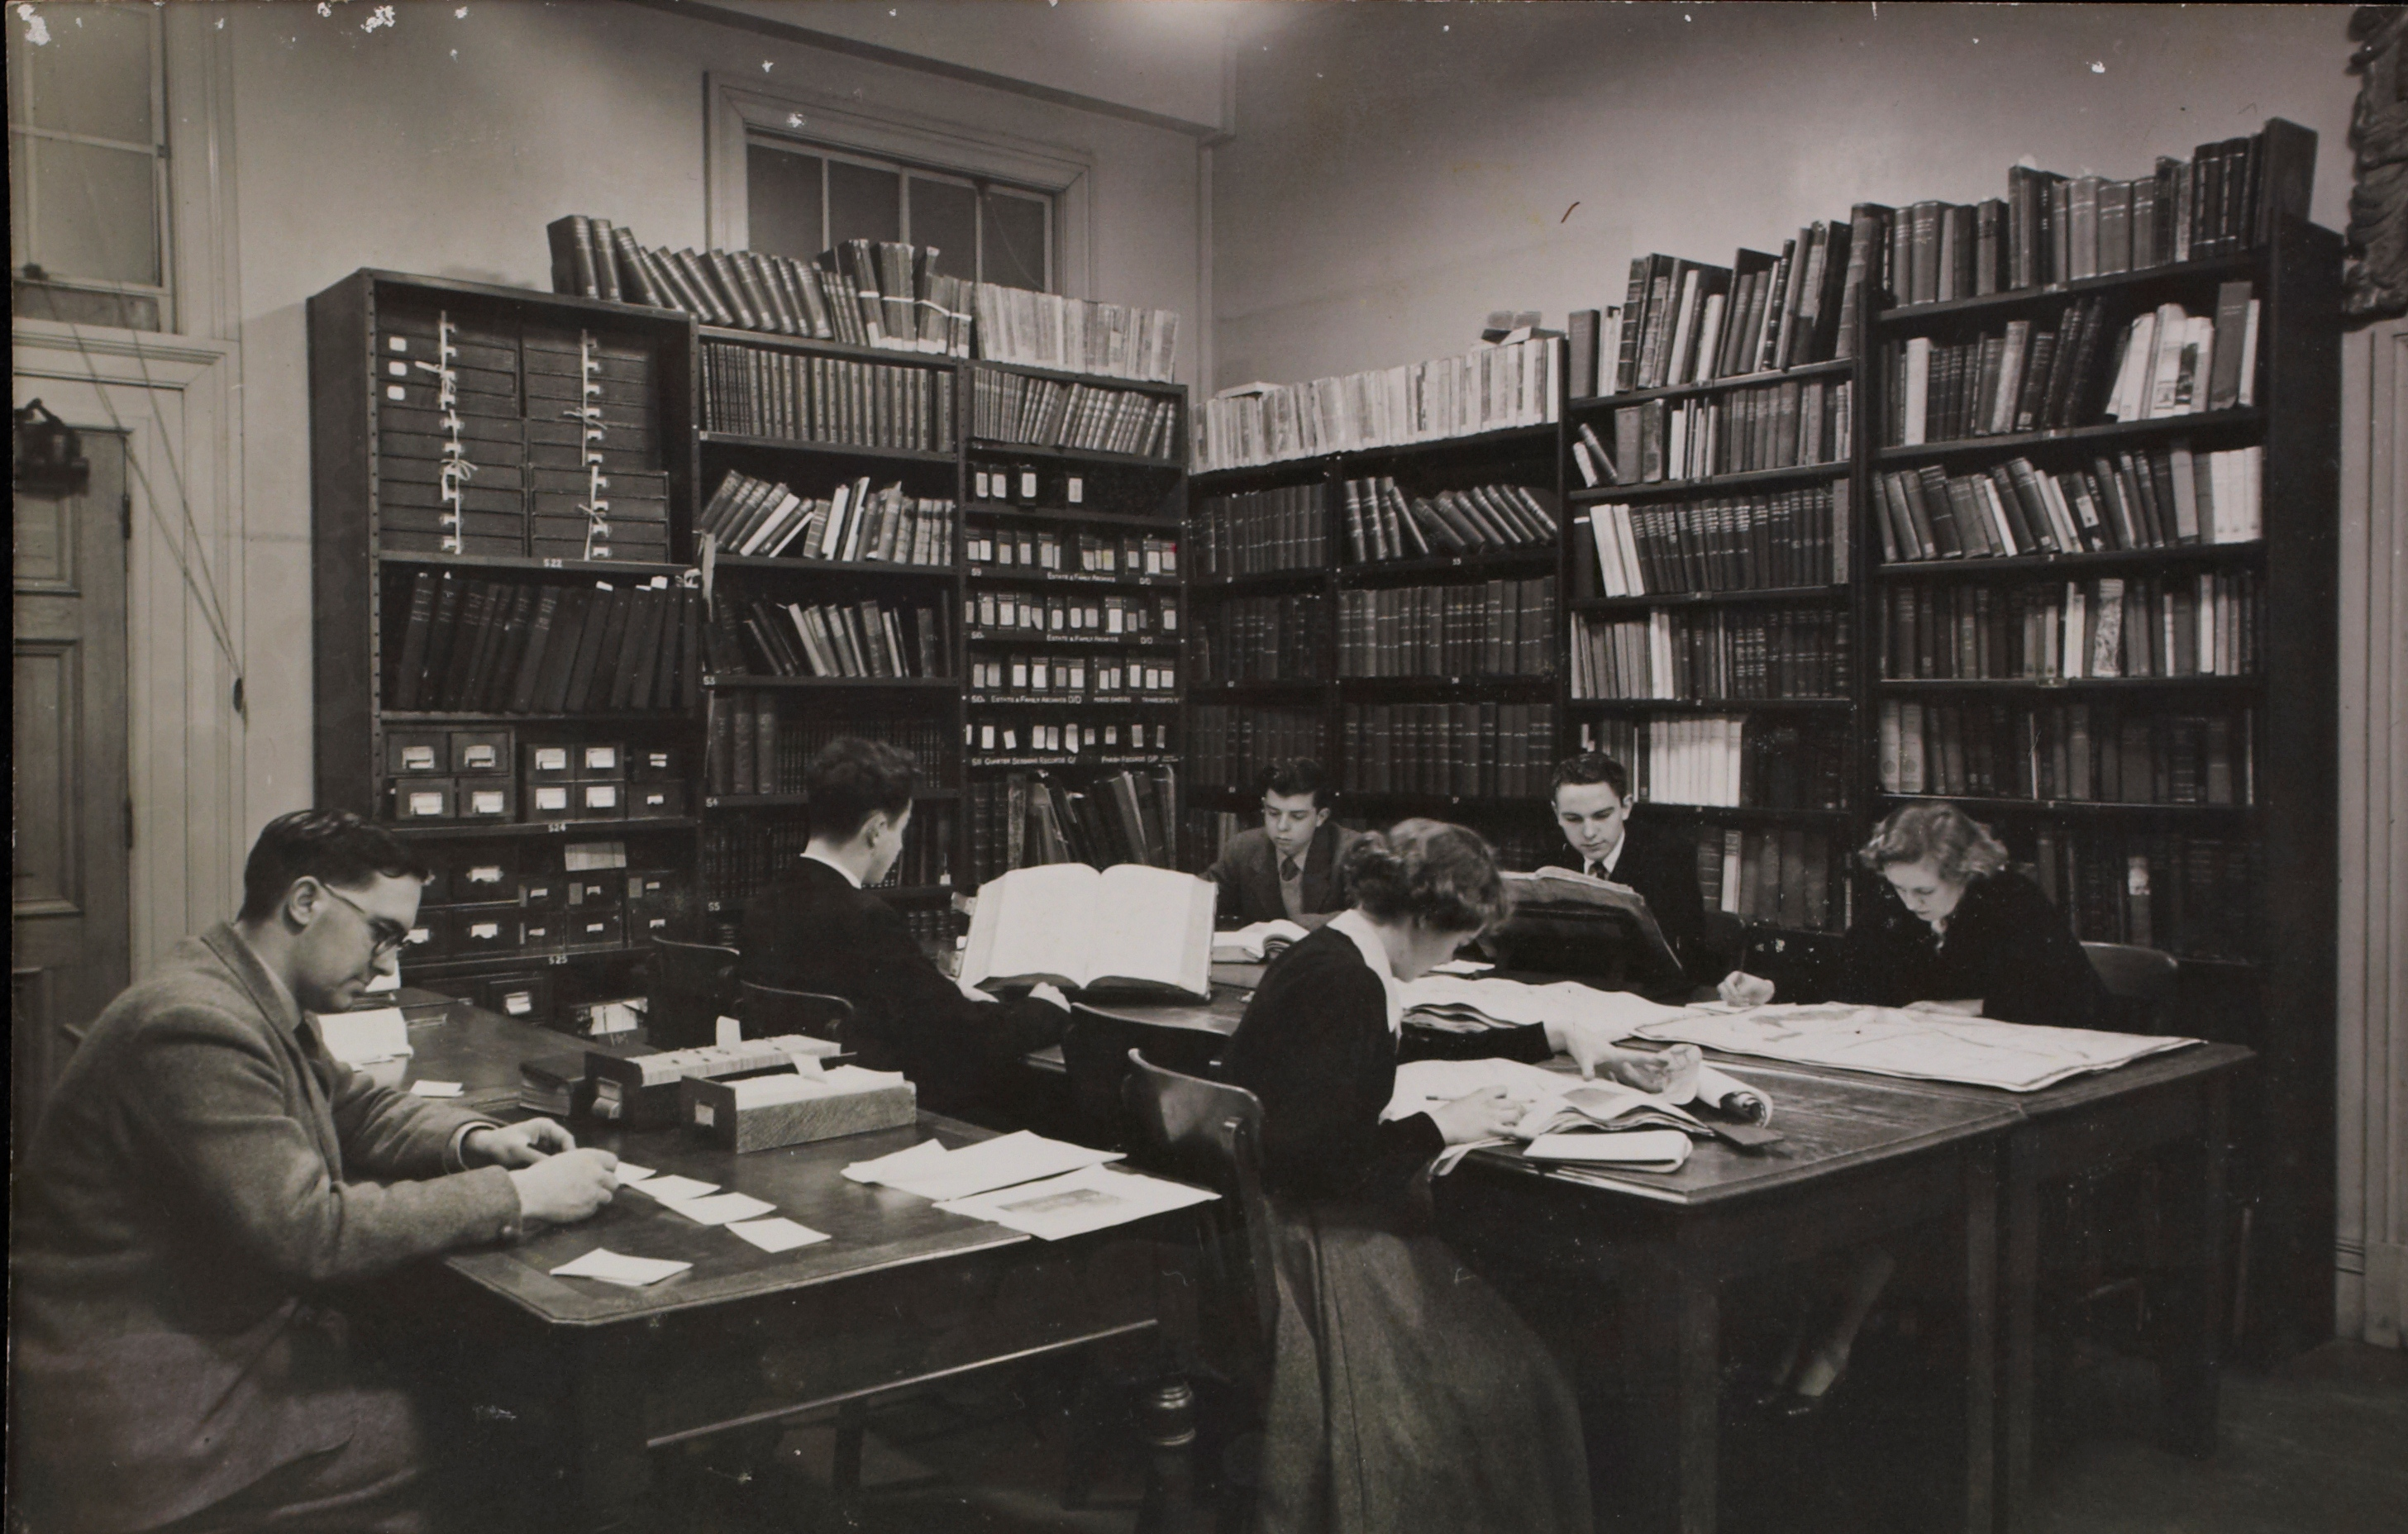 Students' Room in the 1940s (A11915 Box 49)